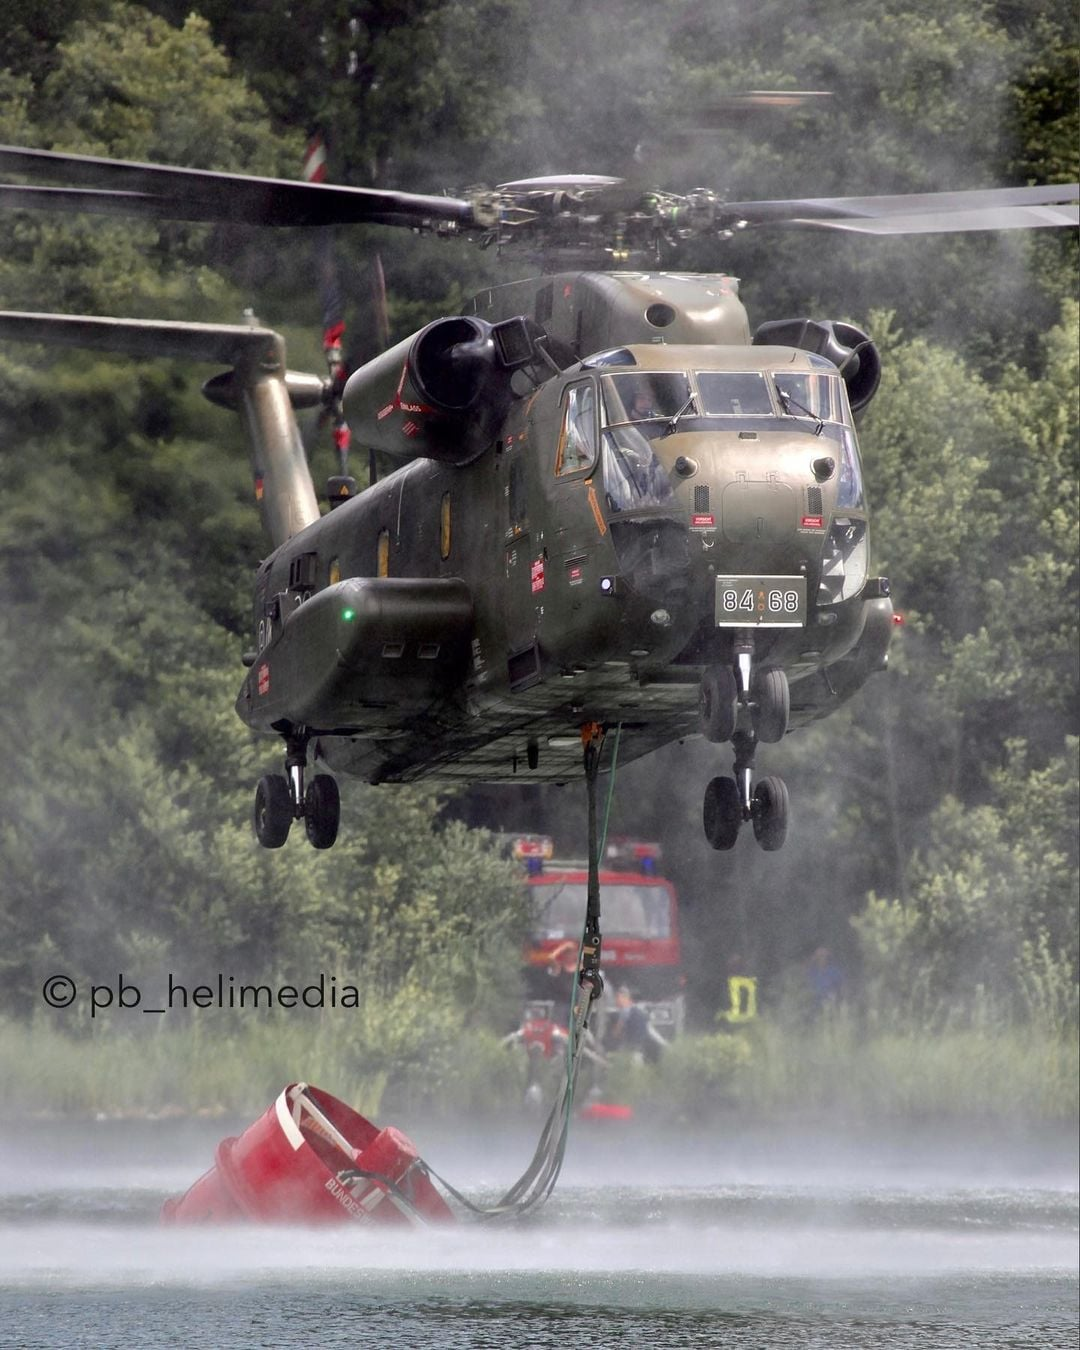 Bundeswehr Sikorsky CH-53G refilling a bucket during firefighting operations. Photo submitted by Instagram user @pb_helimedia using #verticalmag